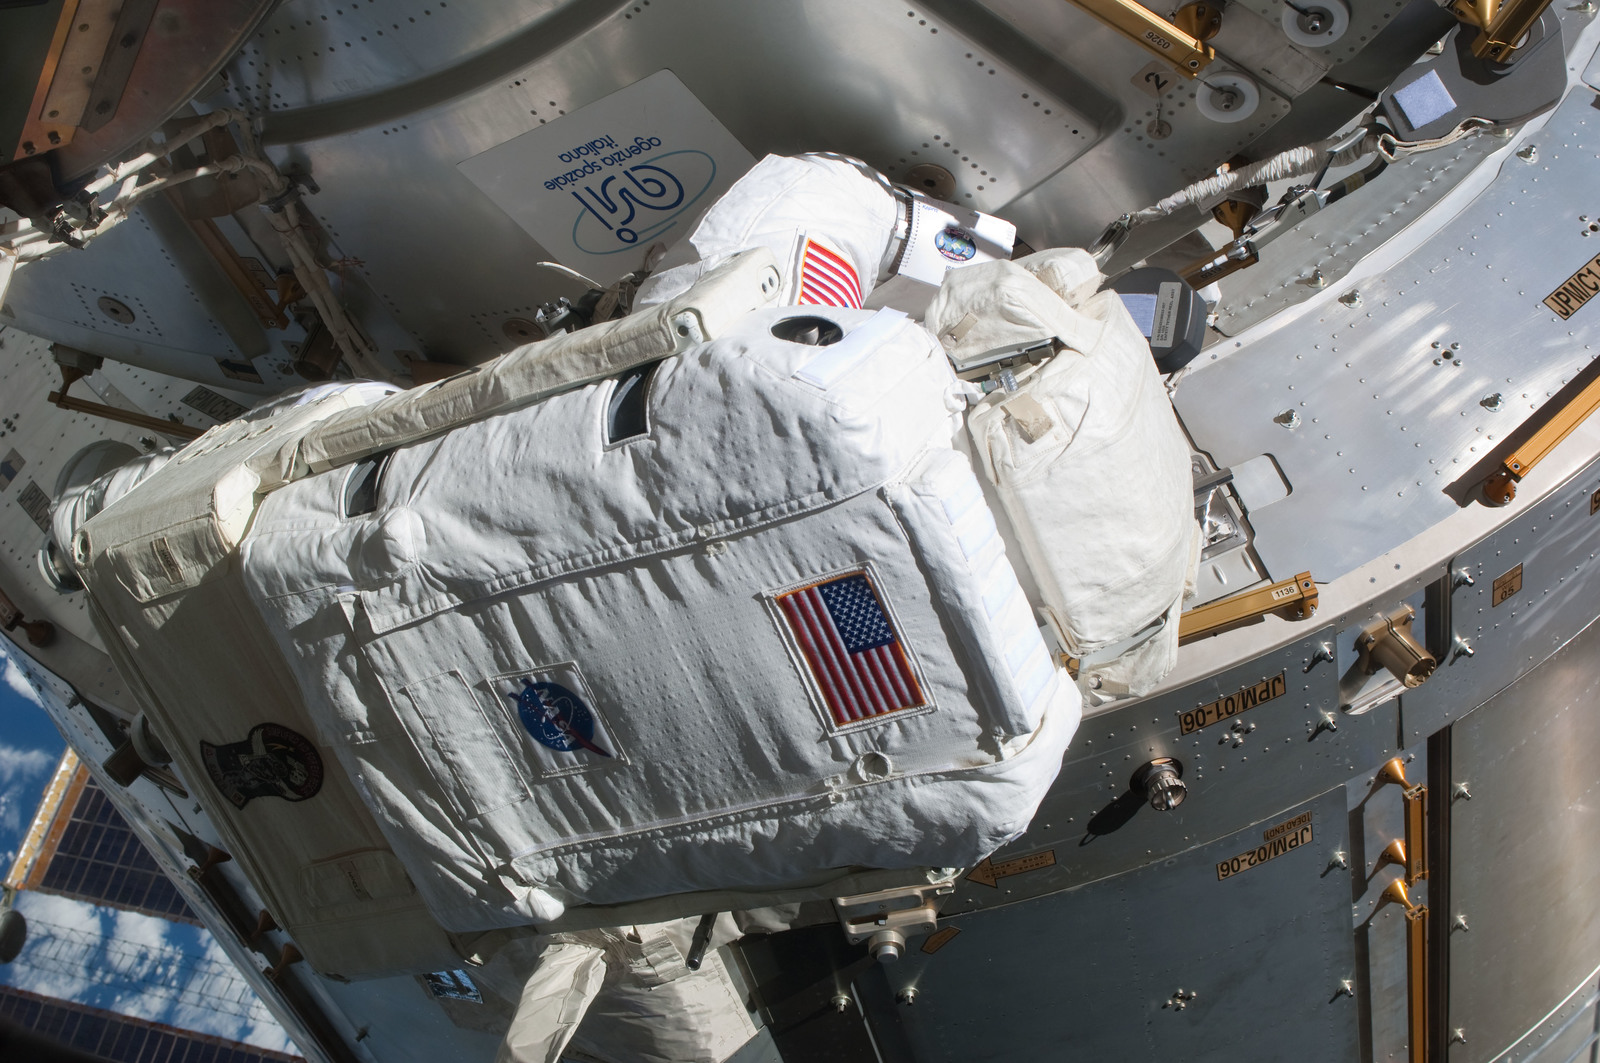 S127E006844 - STS-127 - Kopra at JPM during EVA-1 on STS-127 / Expedition 20 Joint Operations